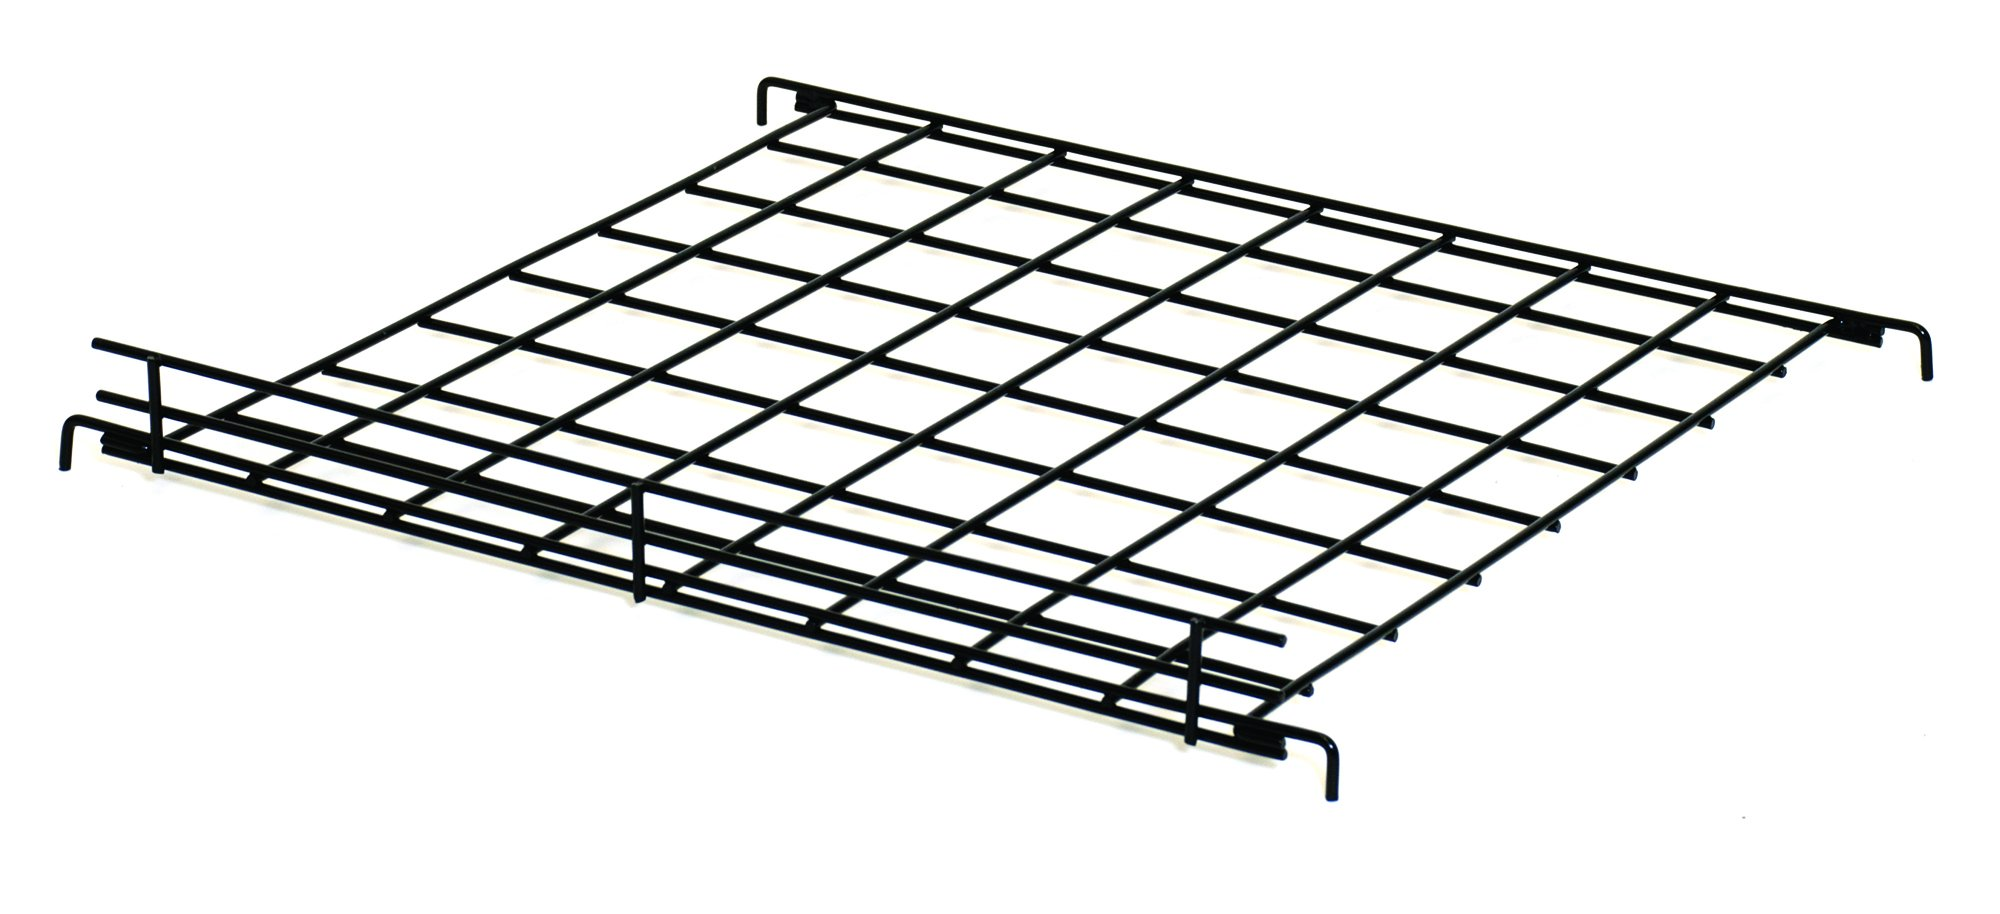 KC Store Fixtures A04905 Flat Grid Shelf, 24'' W x 24'' D with 2'' Lip, Black (Pack of 6)